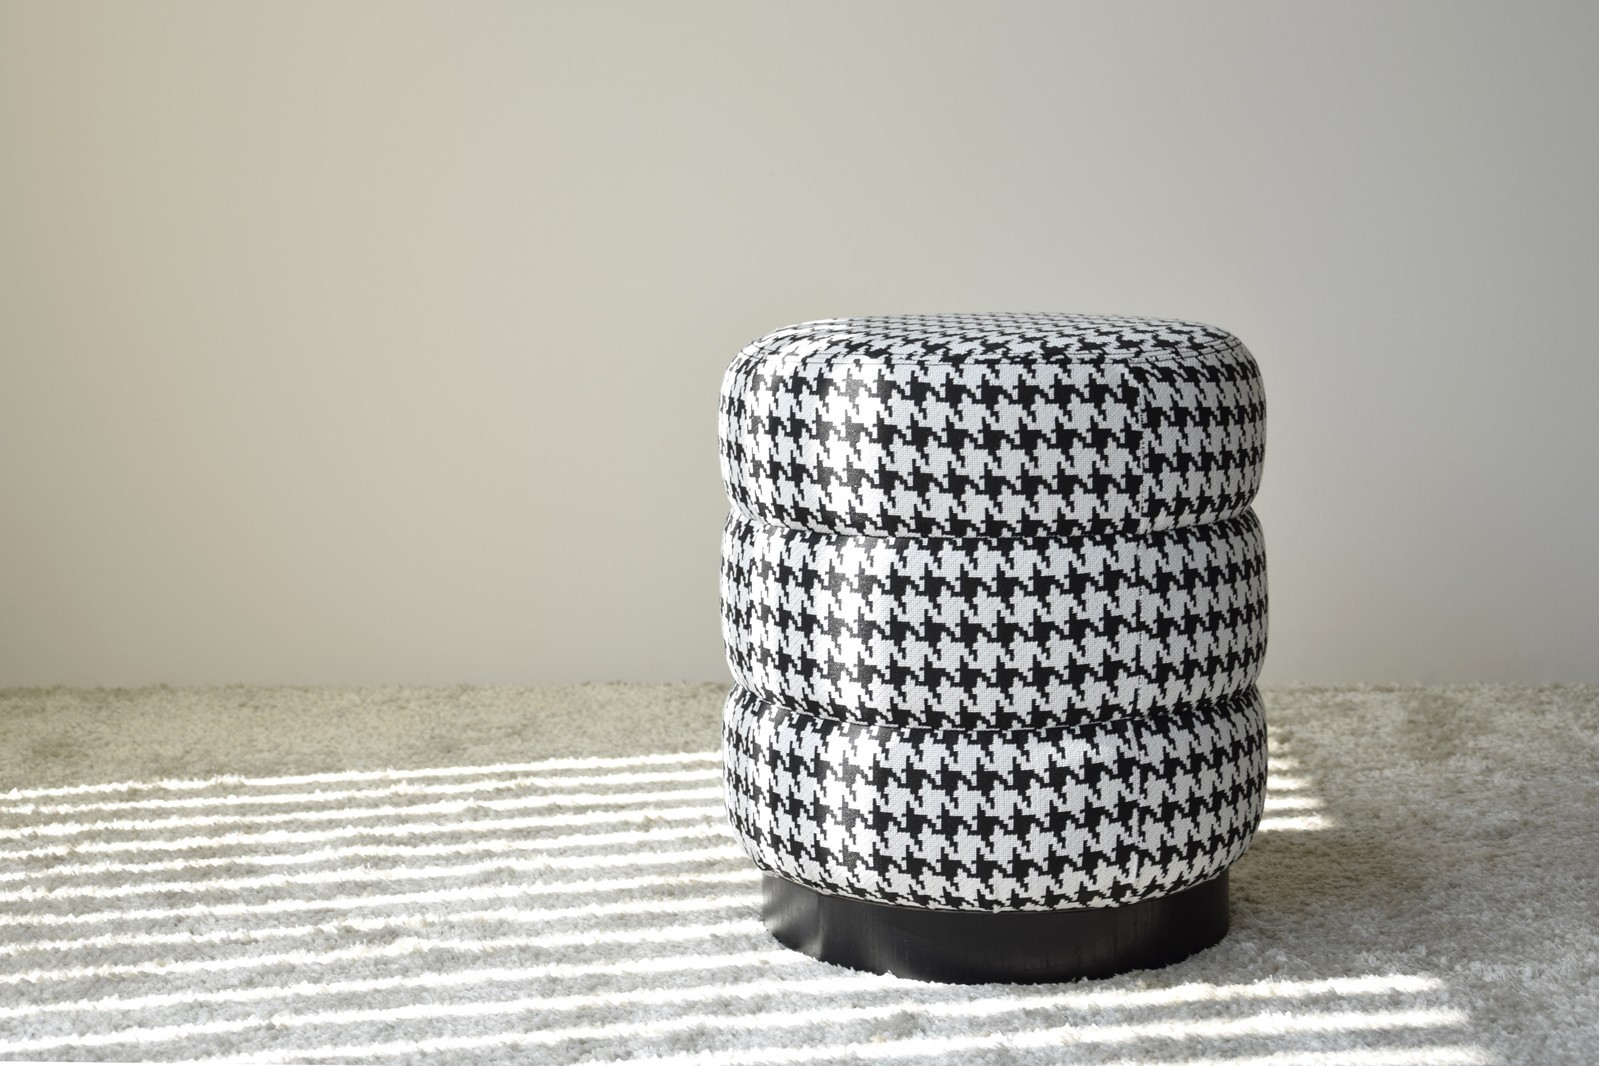 SET 2 STOOLS. HOUNDSTOOTH FABRIC.BLACK AND WHITE